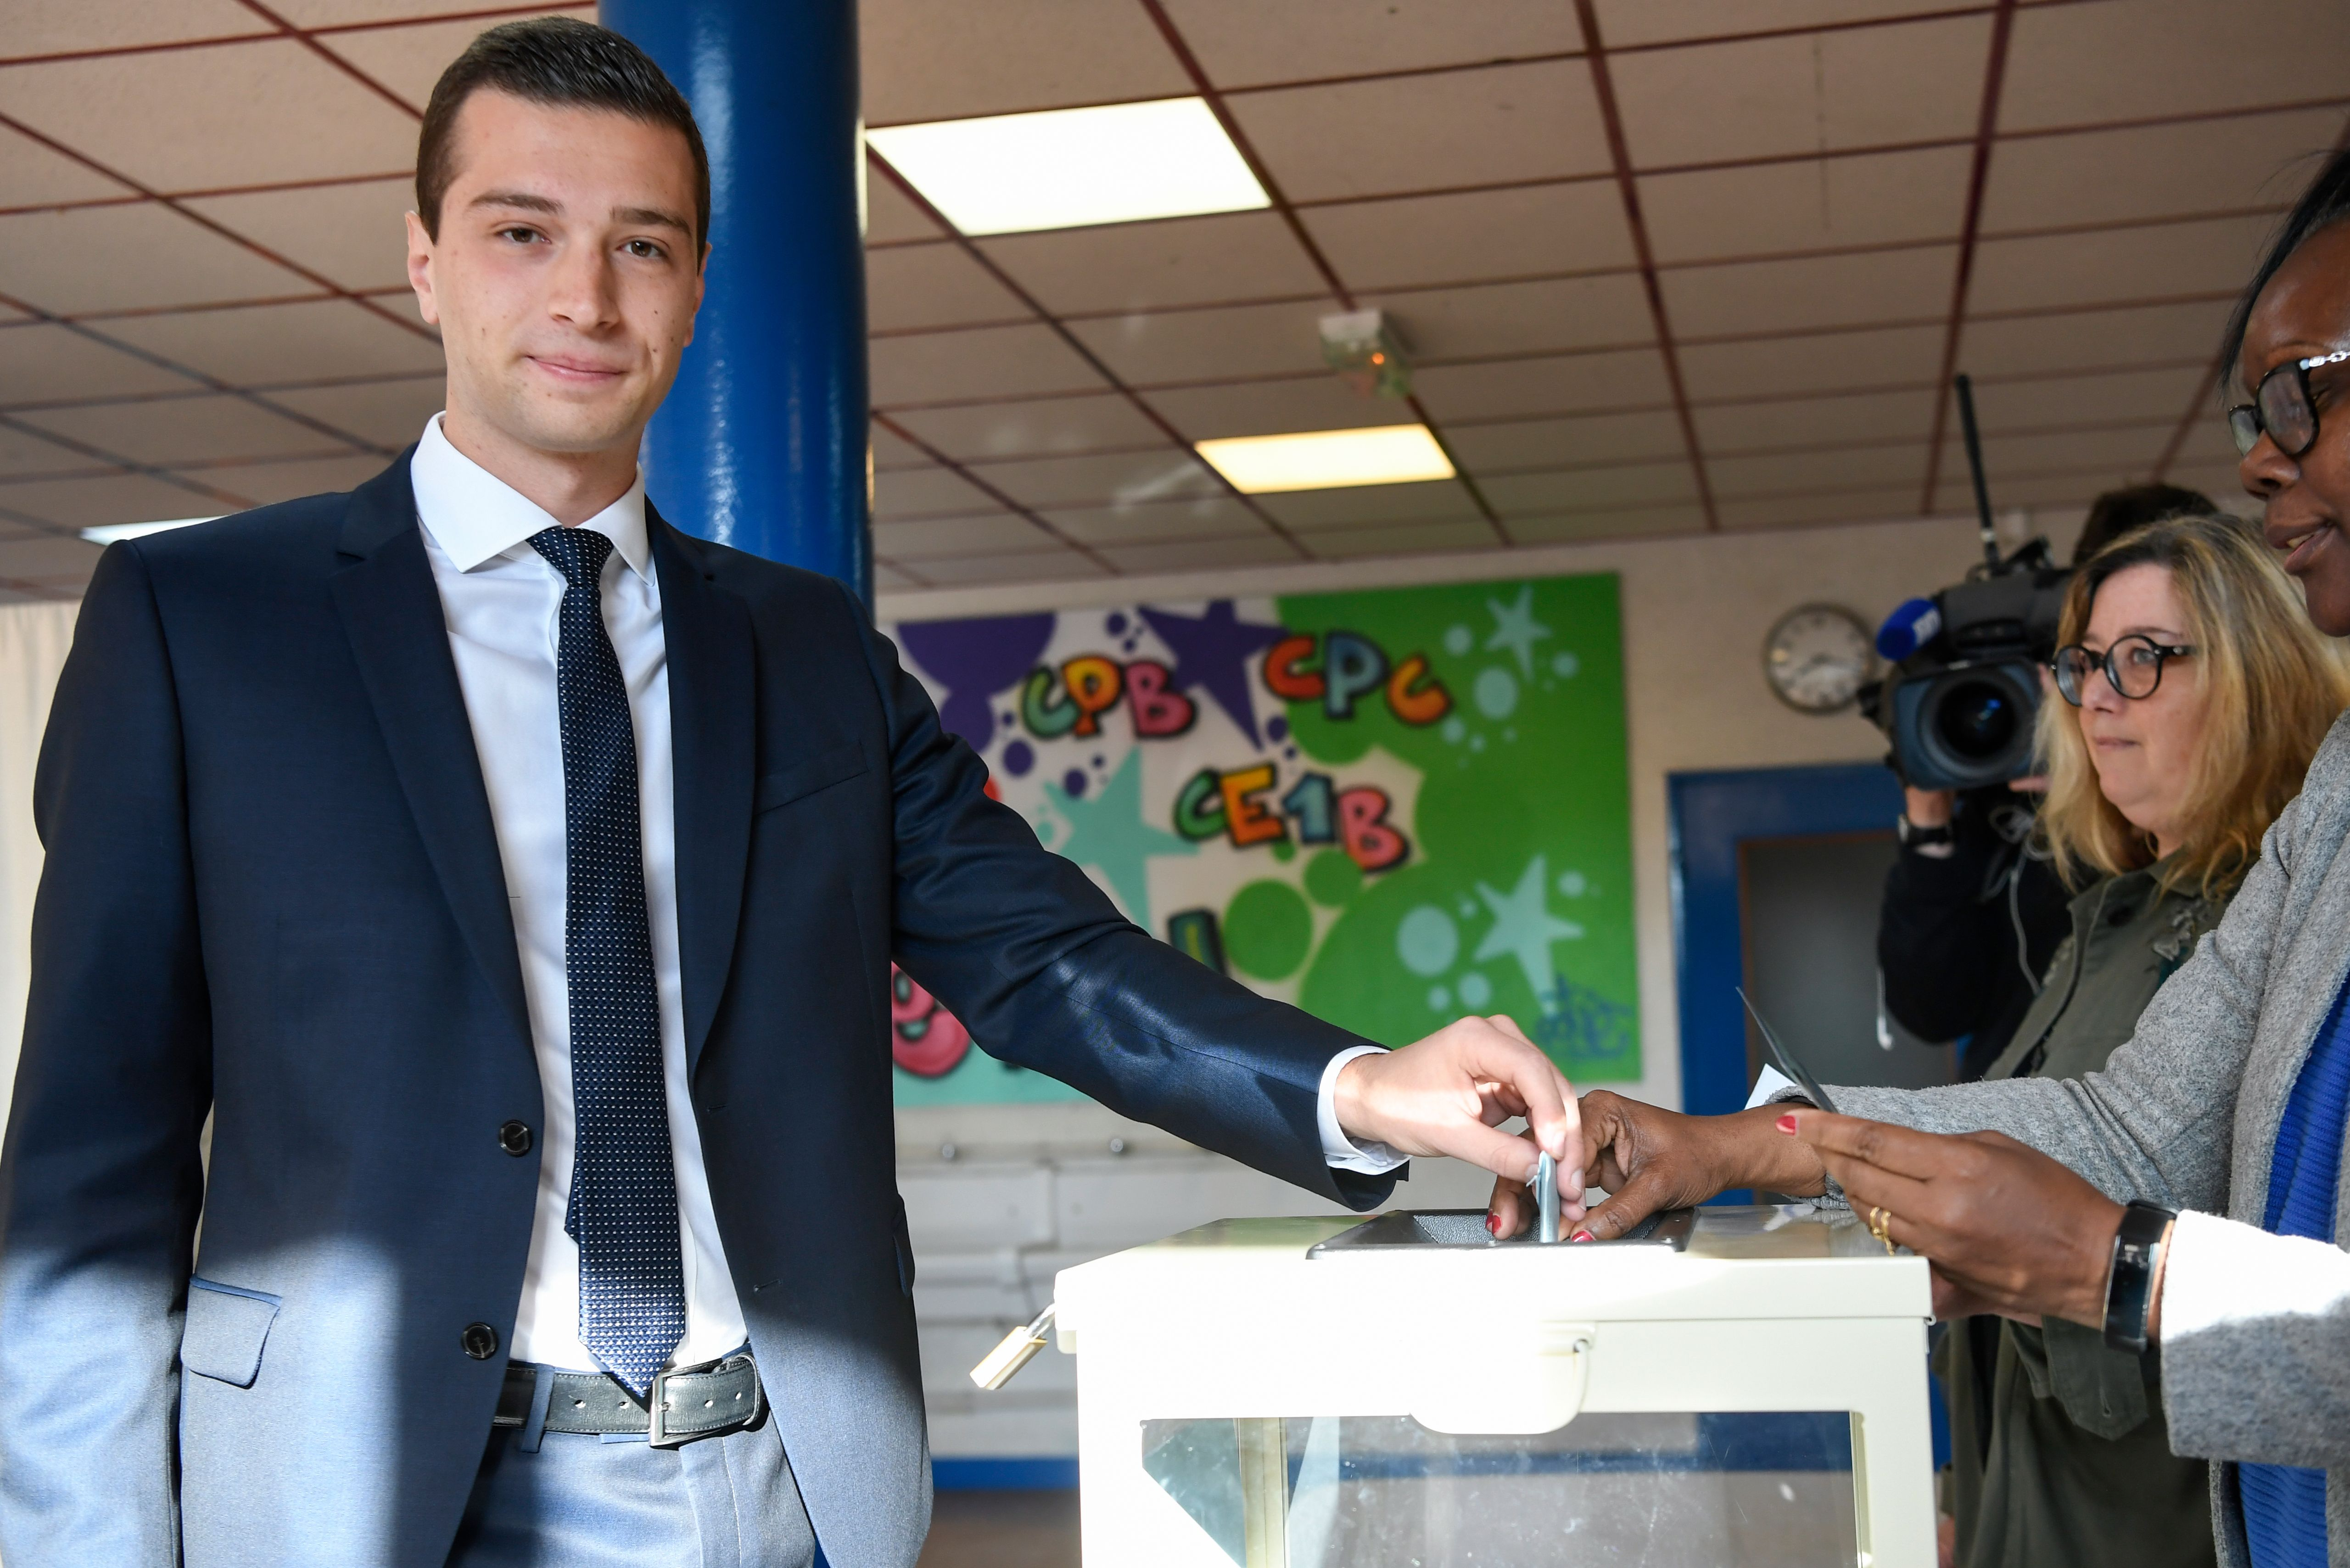 French far-right Rassemblement National (RN) party head candidate for European elections Jordan Bardella (L) casts his vote for the European elections at the Paul Langevin school polling station in Saint-Denis, north of Paris, on May 26, 2019. (BERTRAND GUAY/AFP/Getty Images)